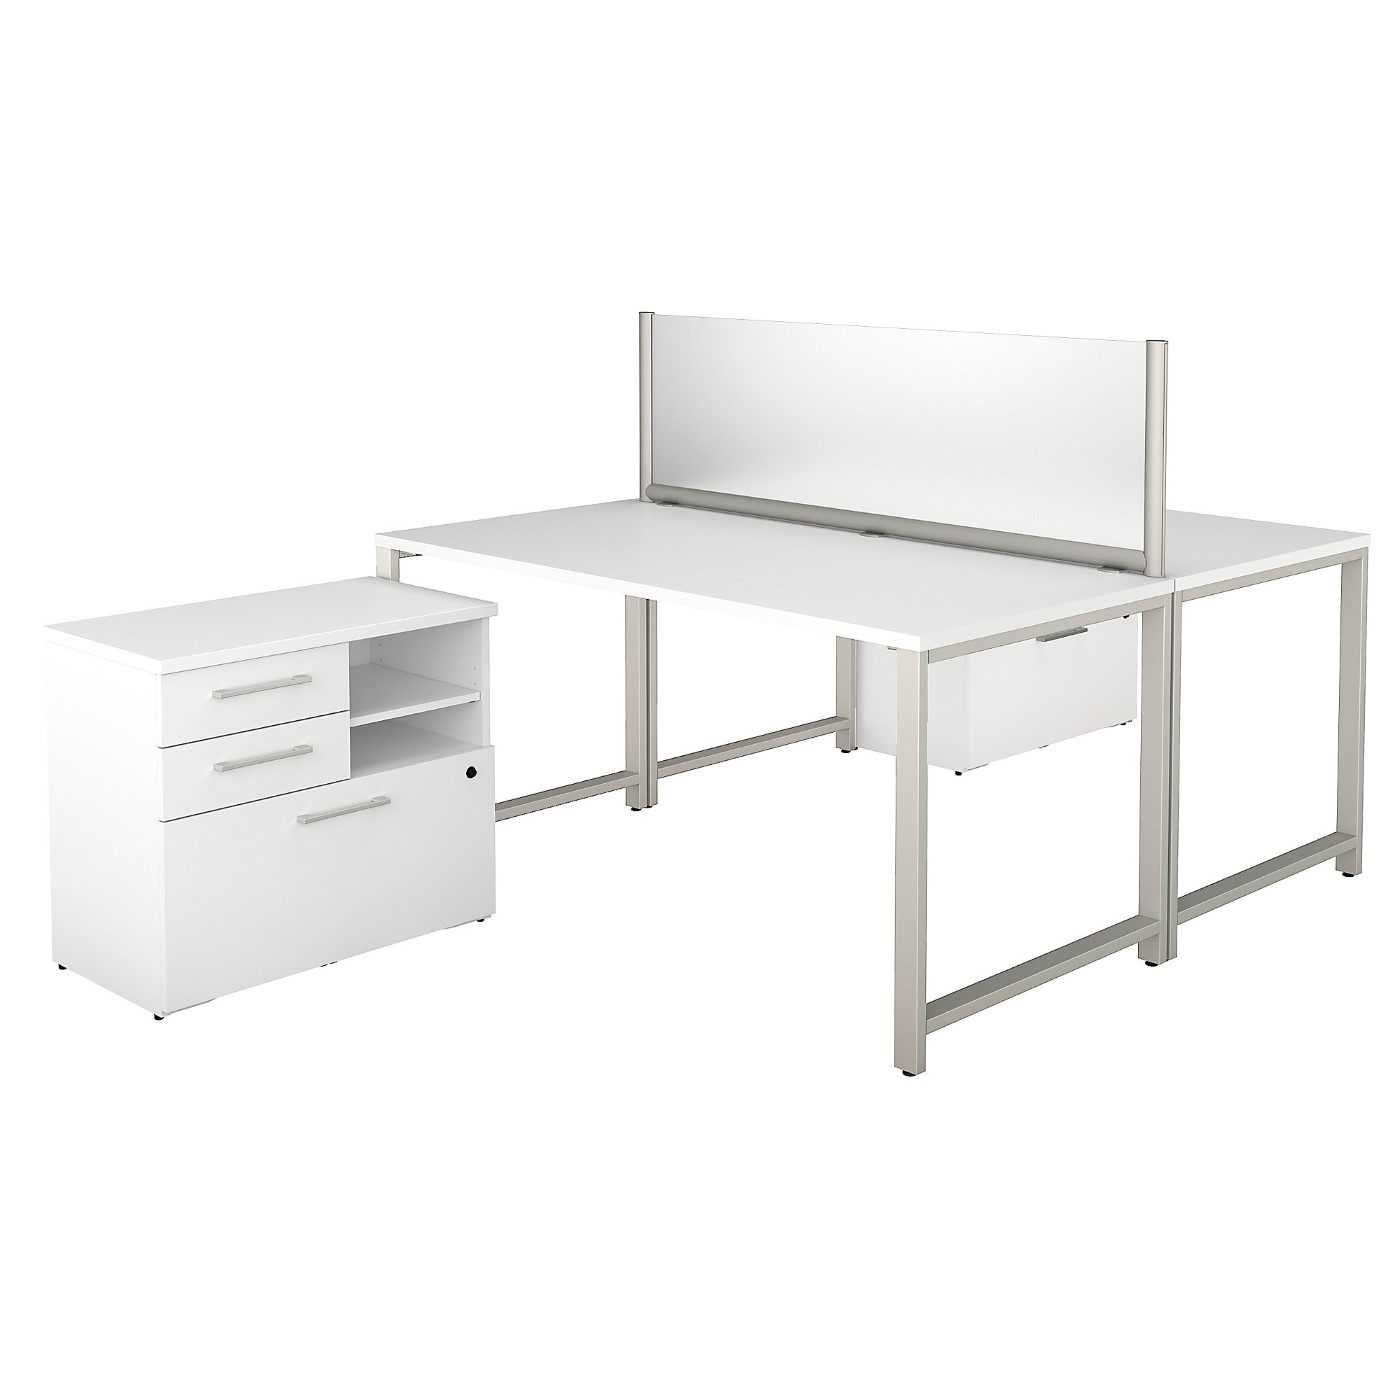 BUSH BUSINESS FURNITURE 400 SERIES 60W X 30D 2 PERSON WORKSTATION WITH TABLE DESKS AND STORAGE. FREE SHIPPING SALE DEDUCT 10% MORE ENTER '10percent' IN COUPON CODE BOX WHILE CHECKING OUT.